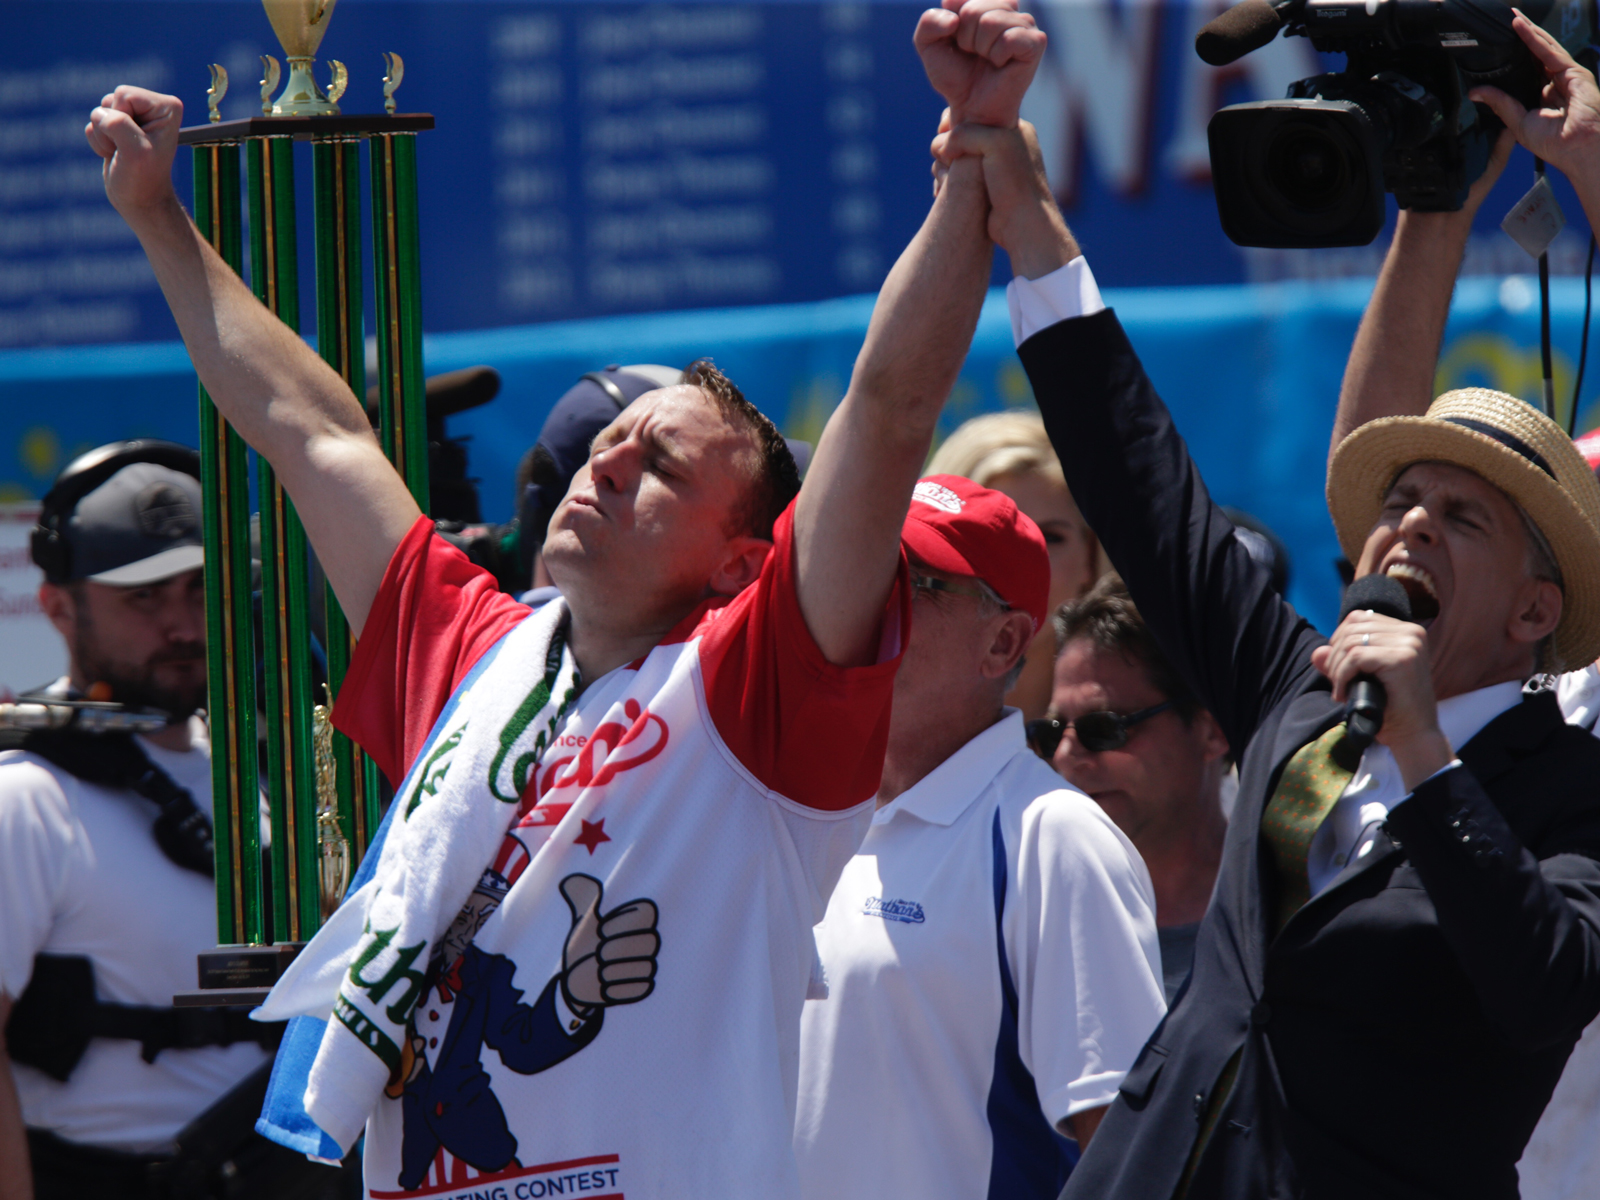 Nathan's Hot Dog Eating Contest Dominated by Repeat Champions in Non-Record-Breaking Affair